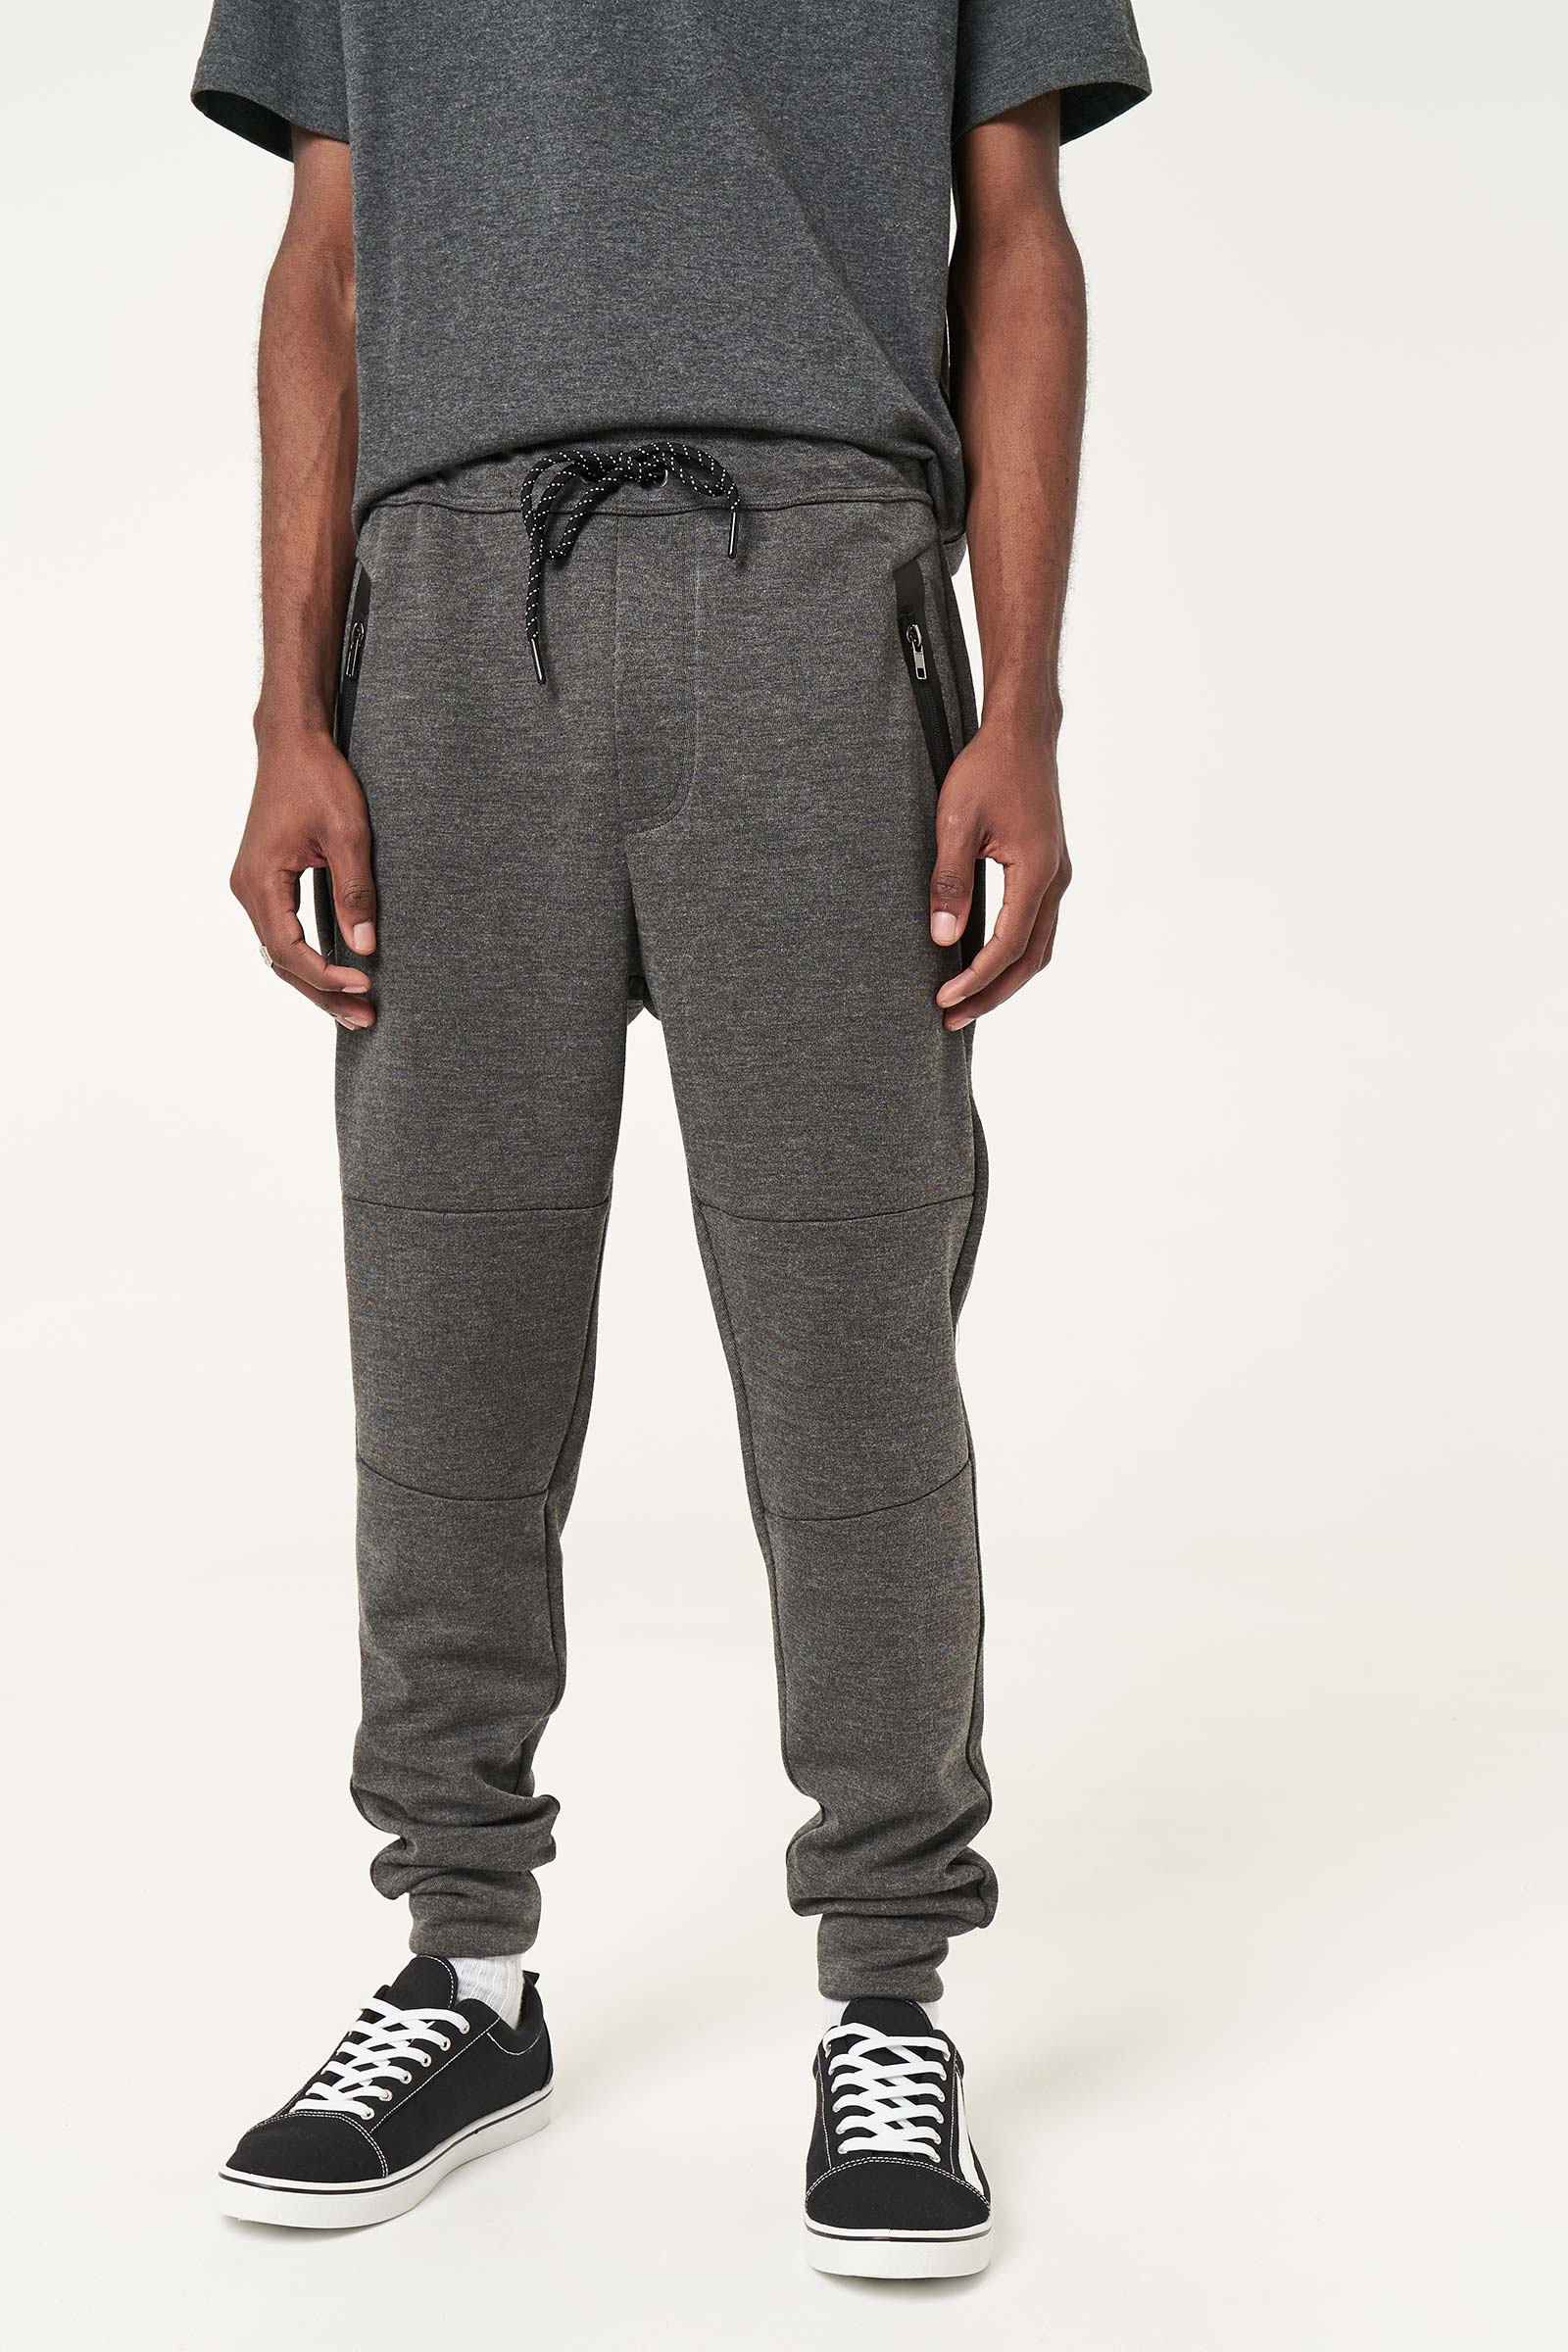 Zipped Joggers for Men